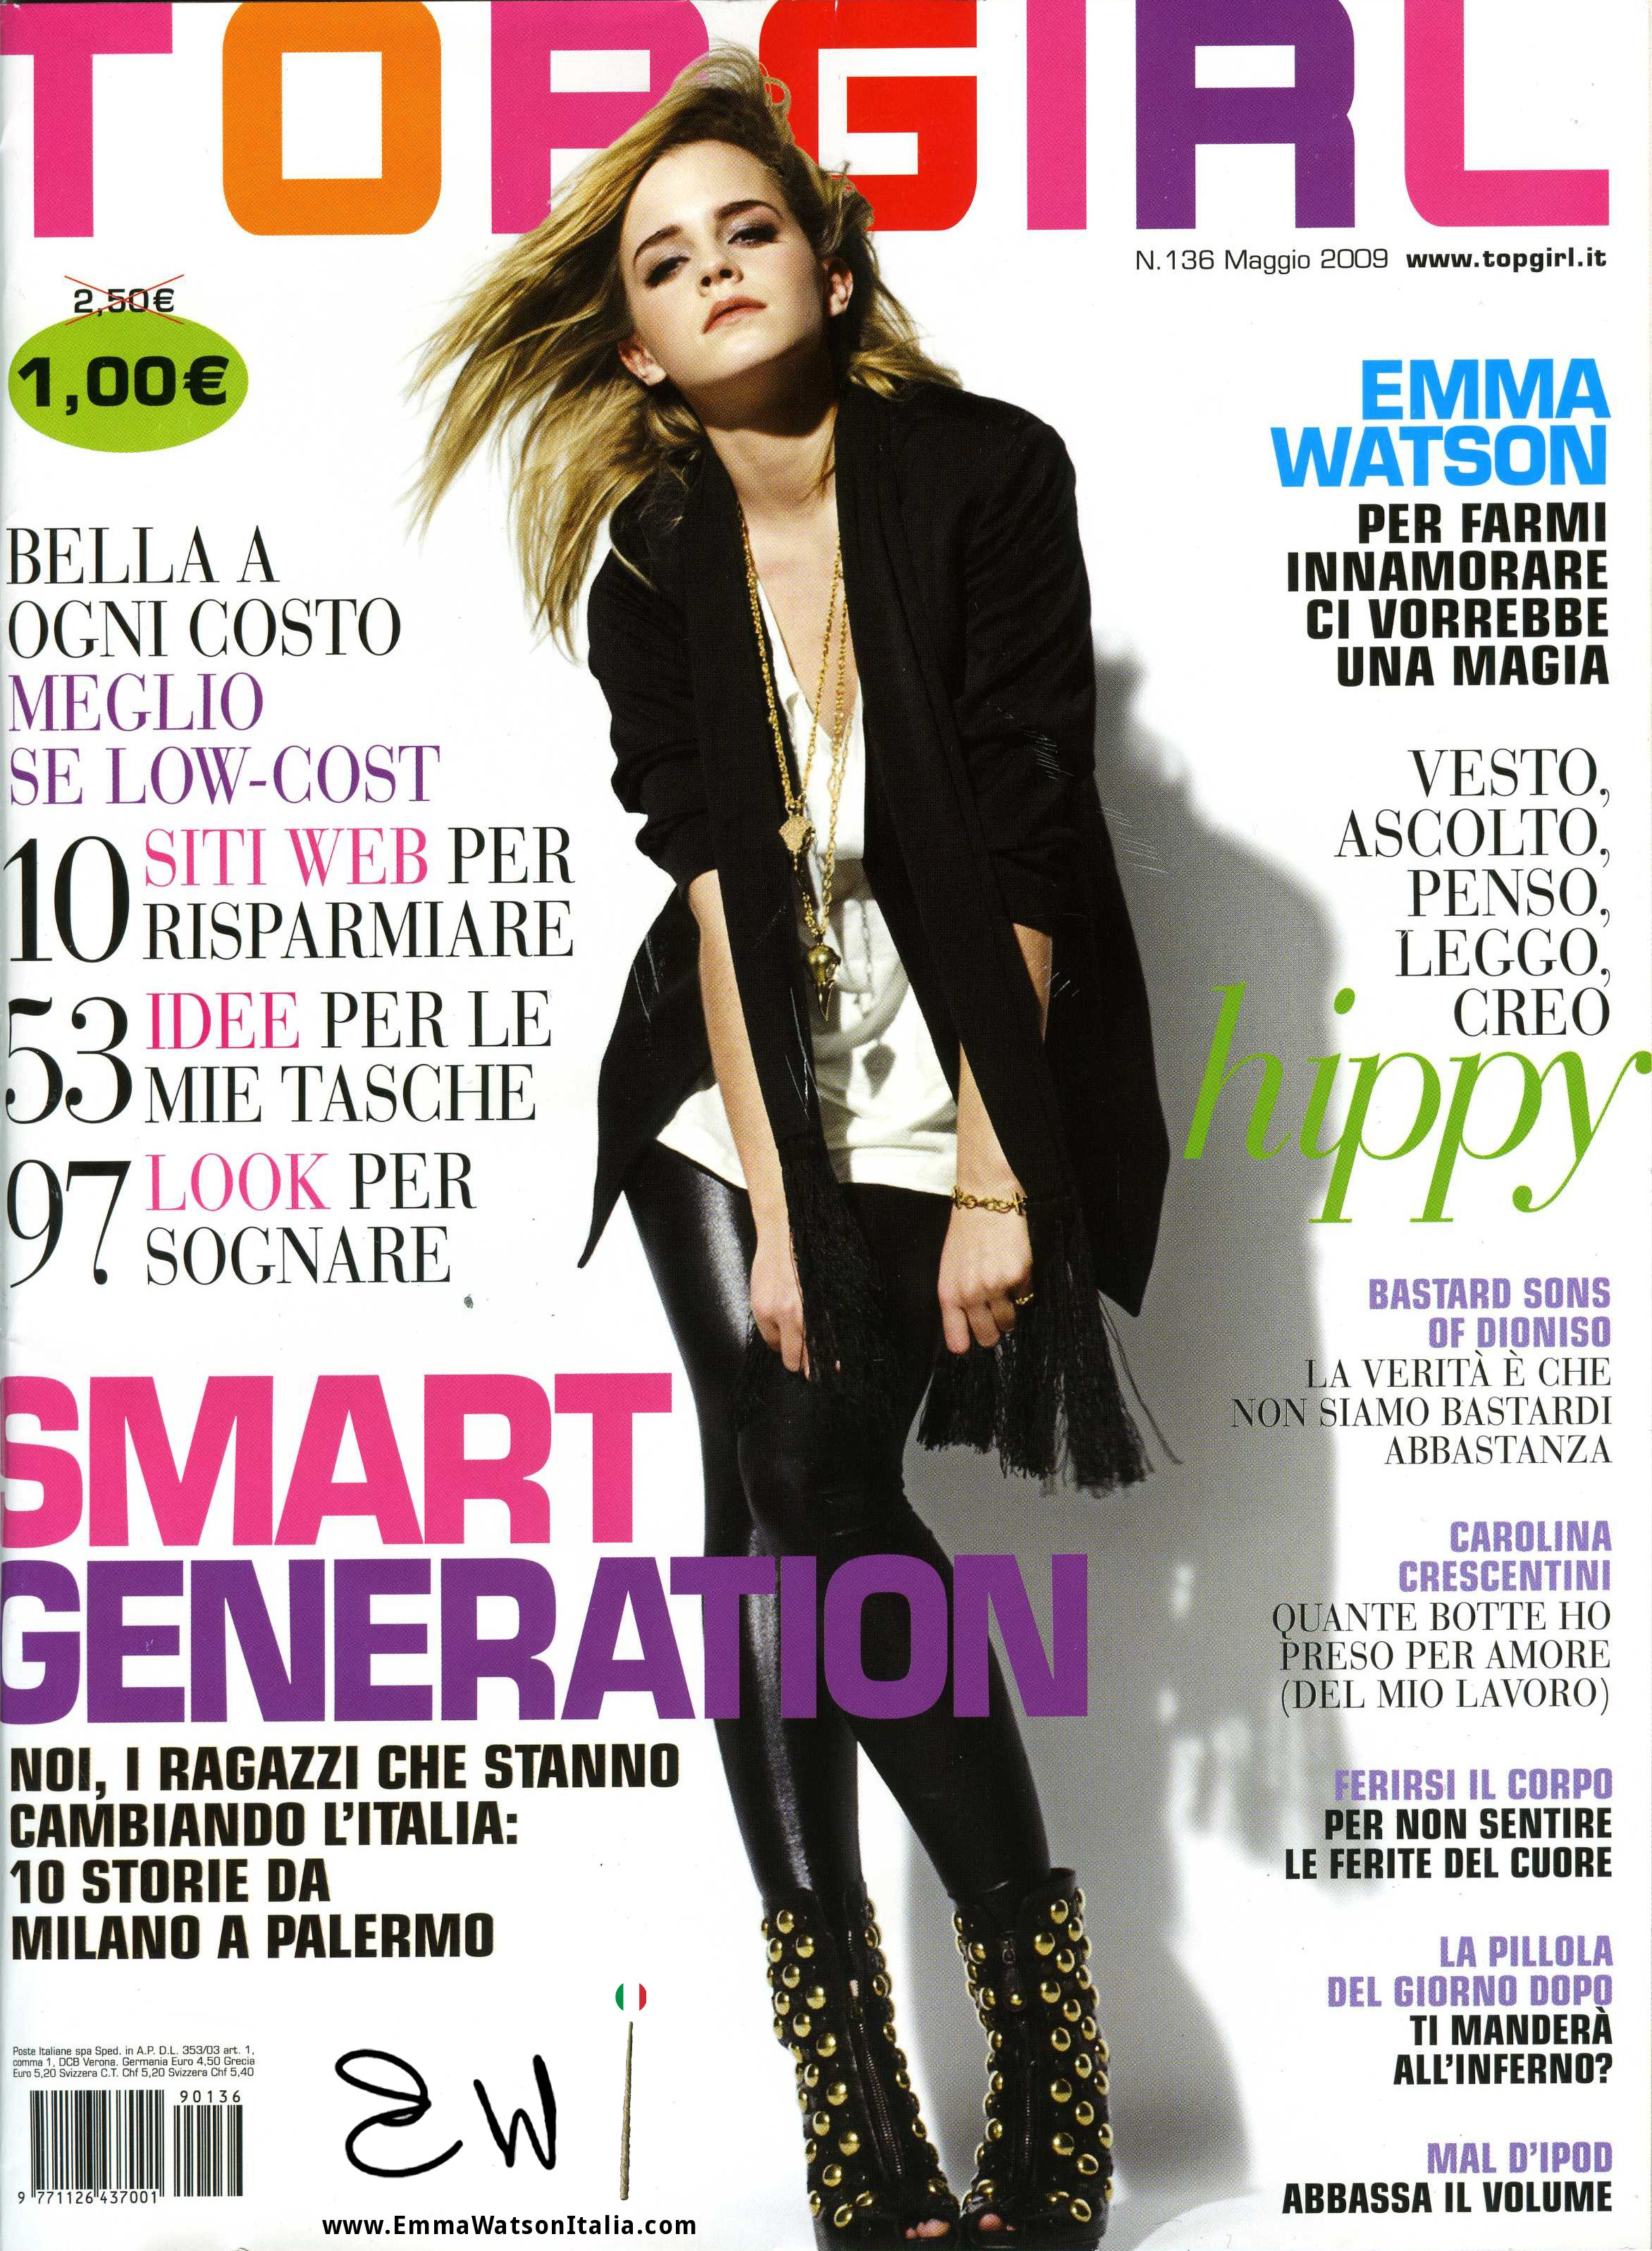 Emma Watson Top Girl cover